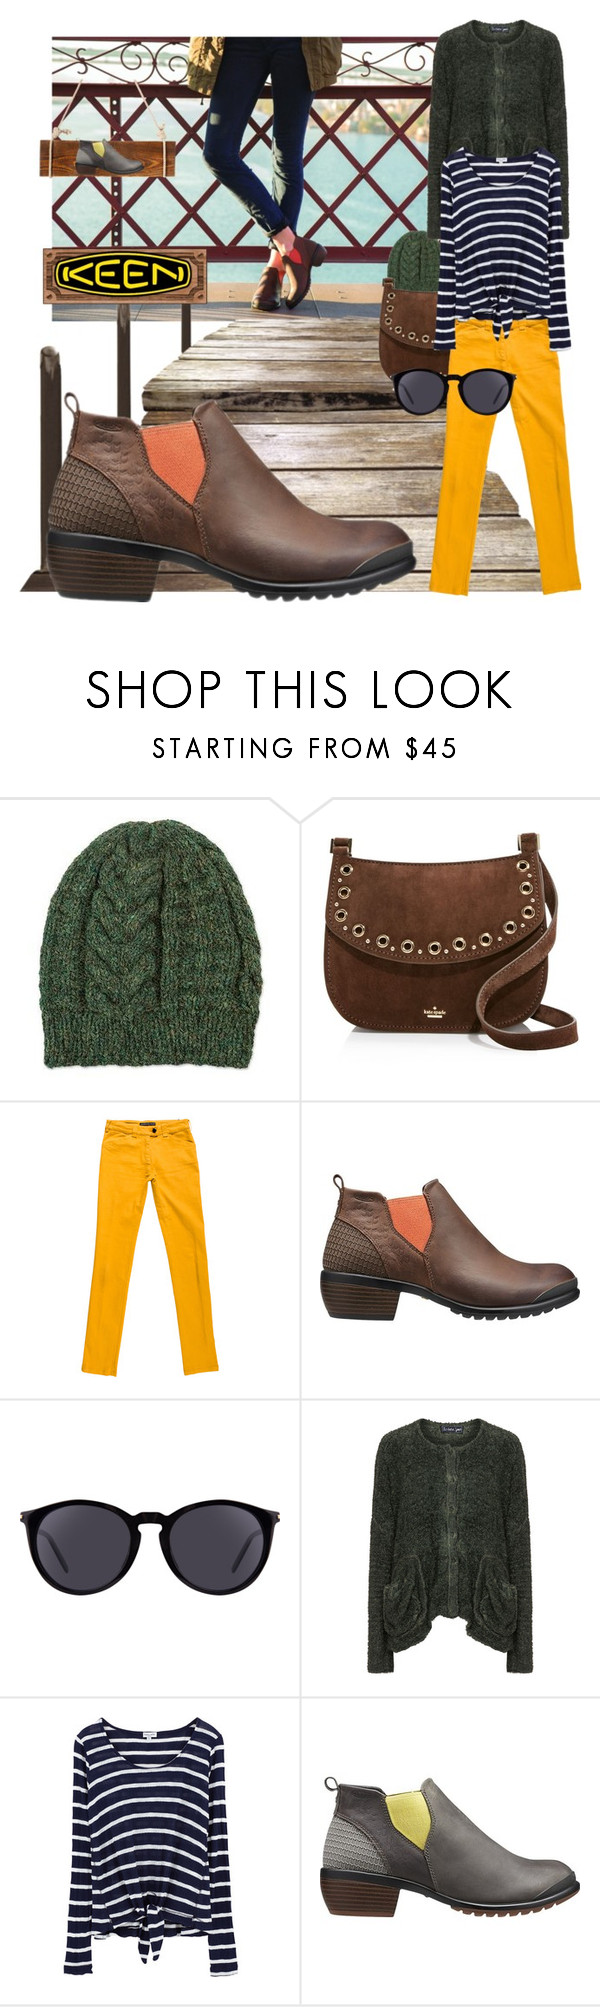 """So Fresh and So Keen: Contest Entry (v1, v2)"" by zeepanda ❤ liked on Polyvore featuring NOVICA, Kate Spade, Balenciaga, Keen Footwear, Yves Saint Laurent, Barbara Speer, Splendid and keen"